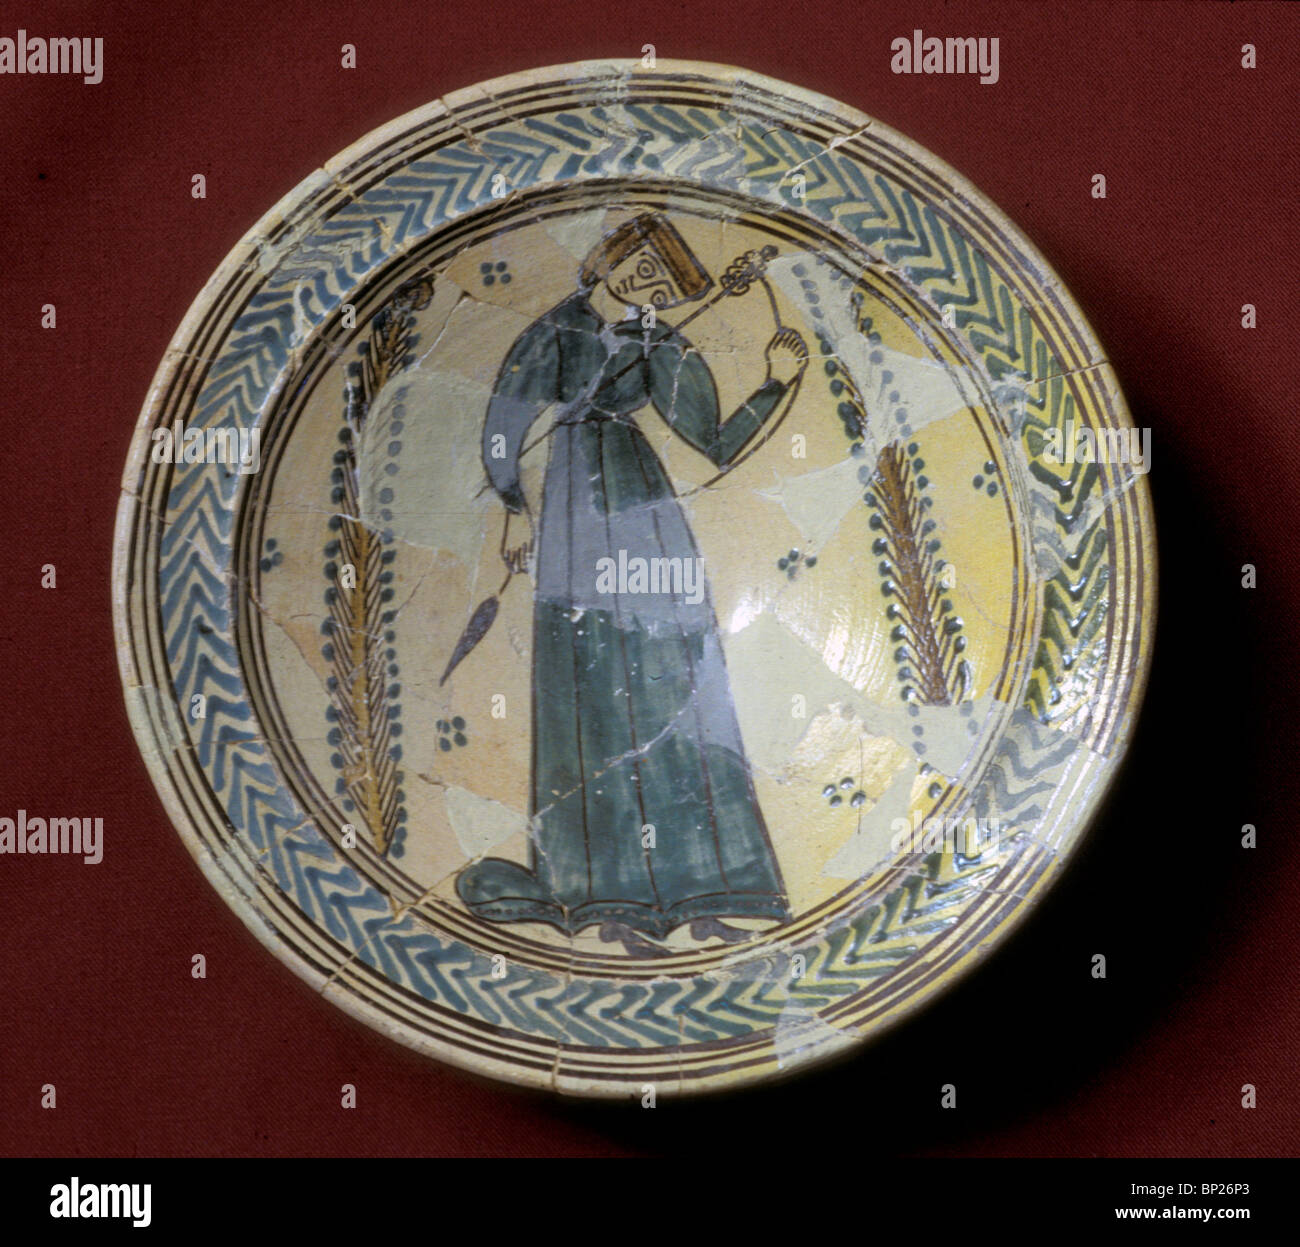 1229. CRUSADER PERIOD PAINTED CERAMIC PLATE DEPICTING A WOMAN SPINNING YARN - Stock Image